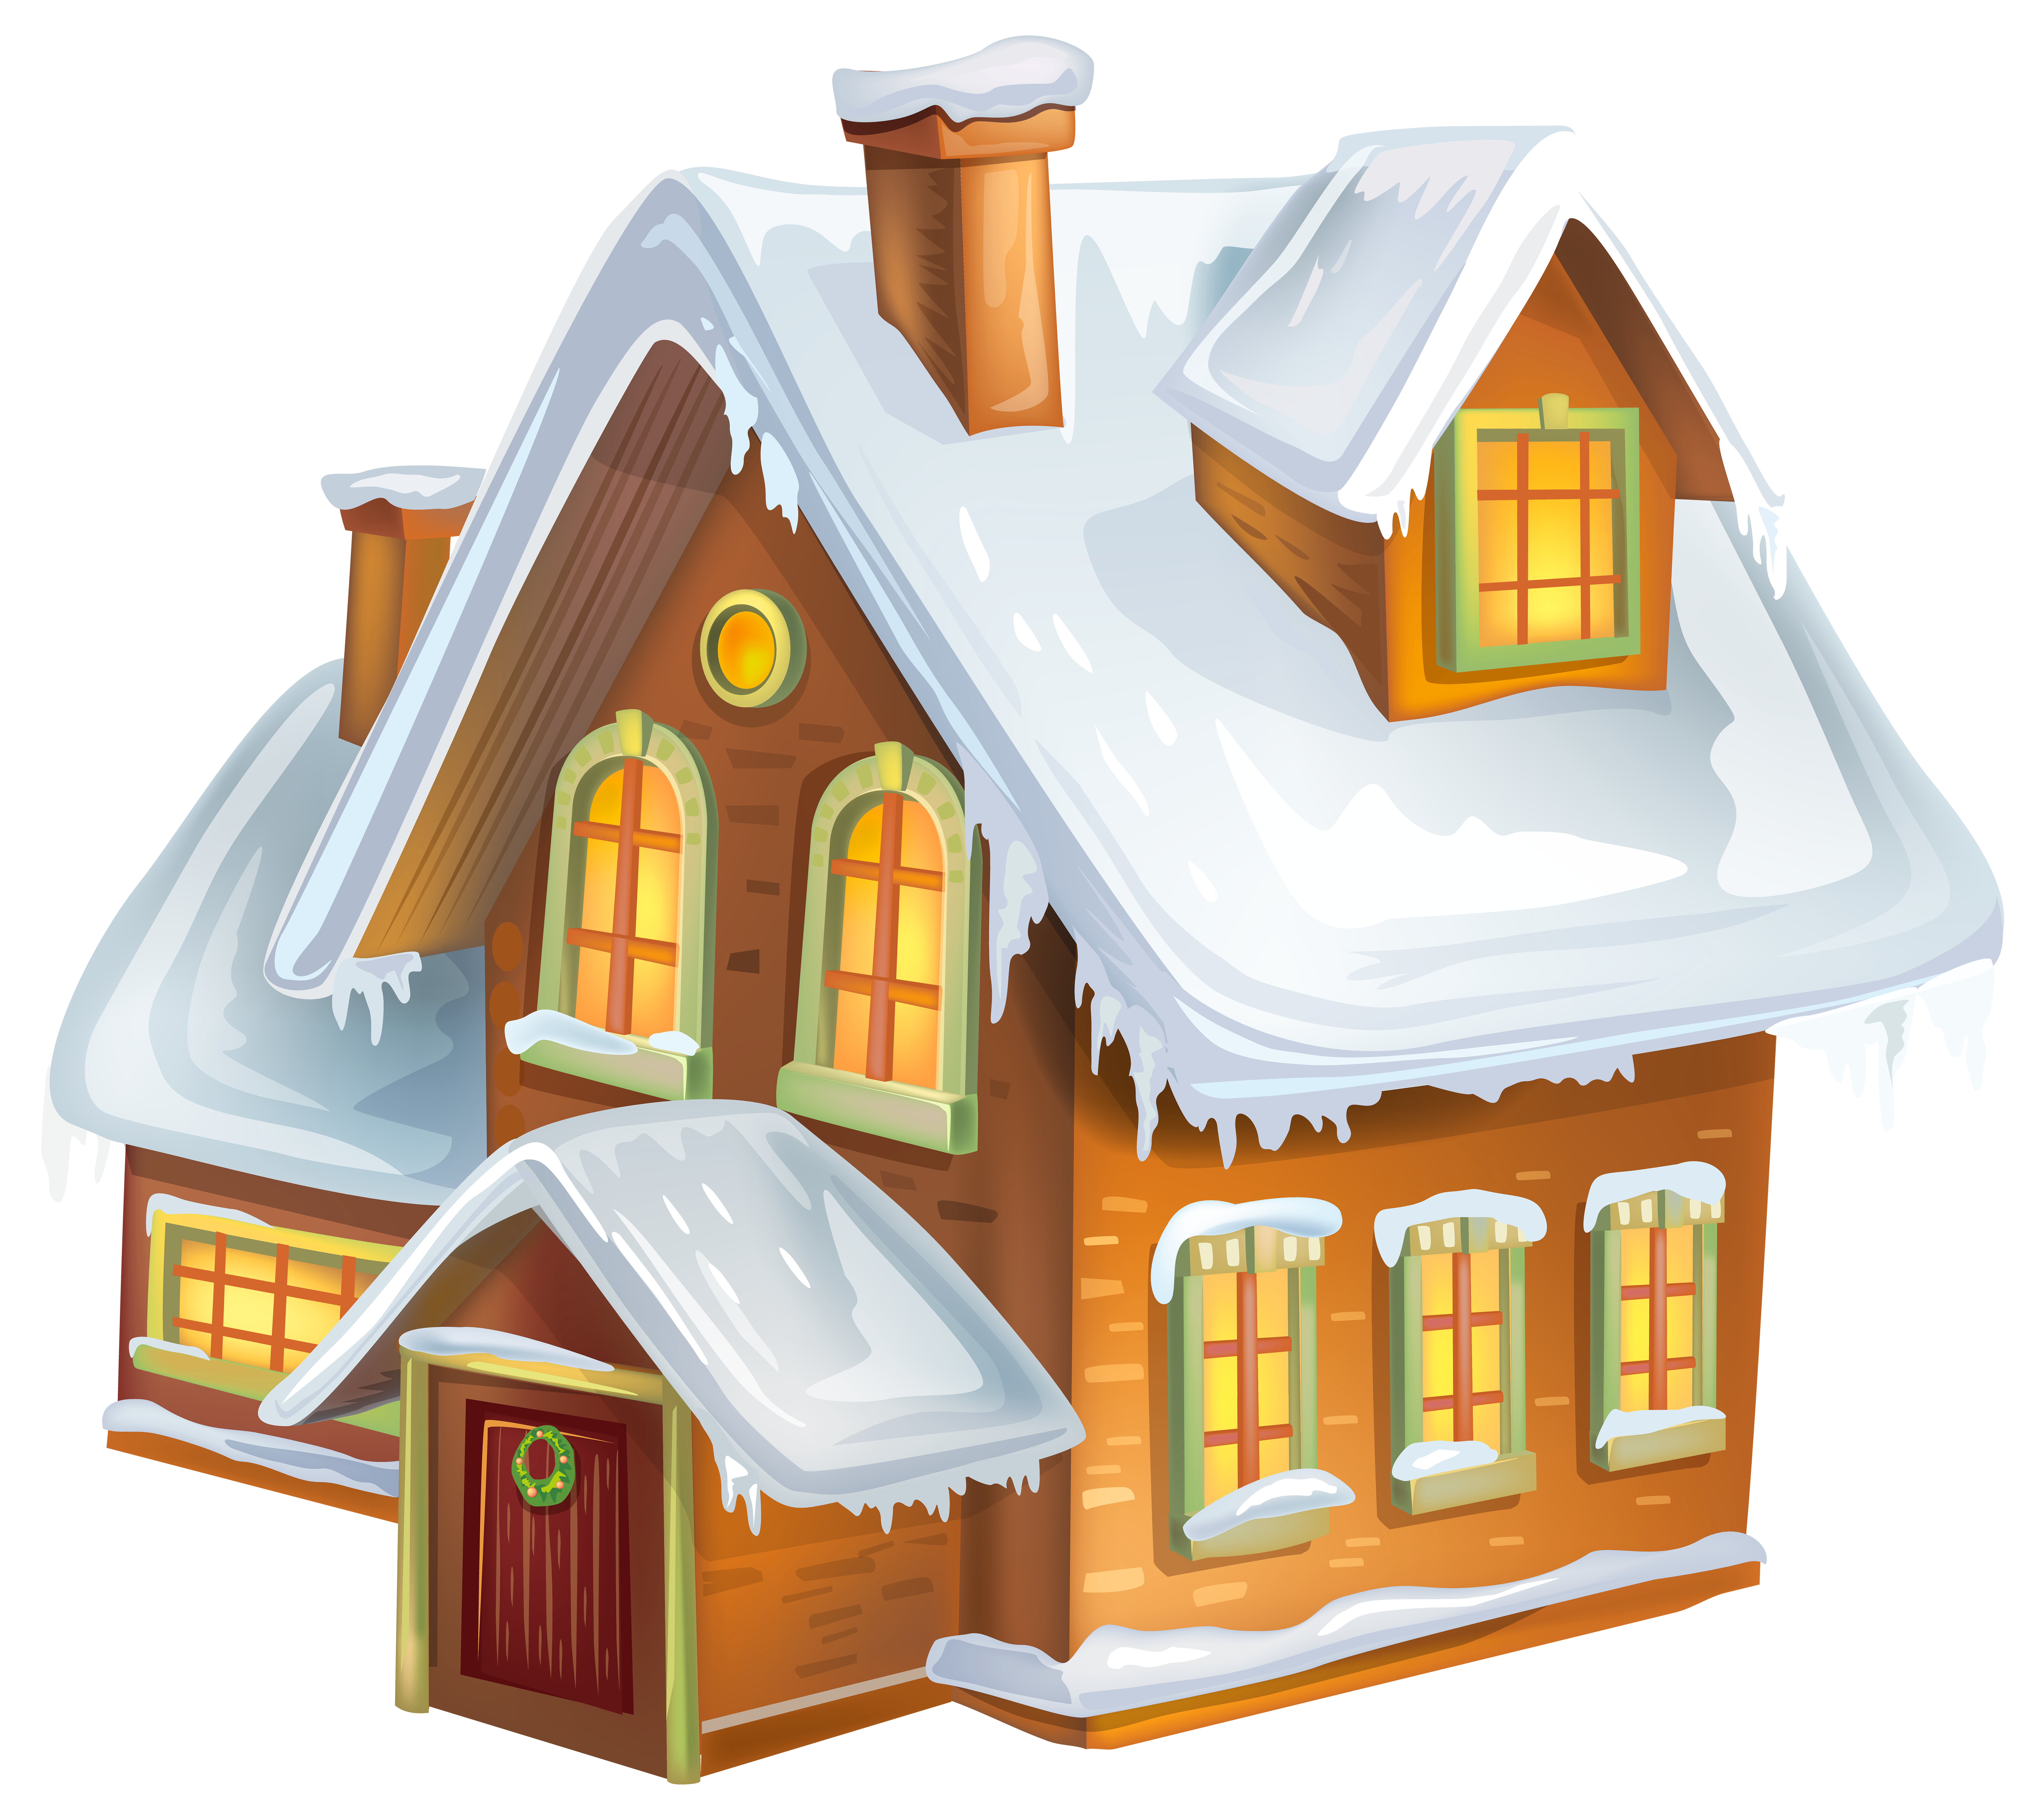 Christmas Winter House Transparent PNG Clip Art Image.